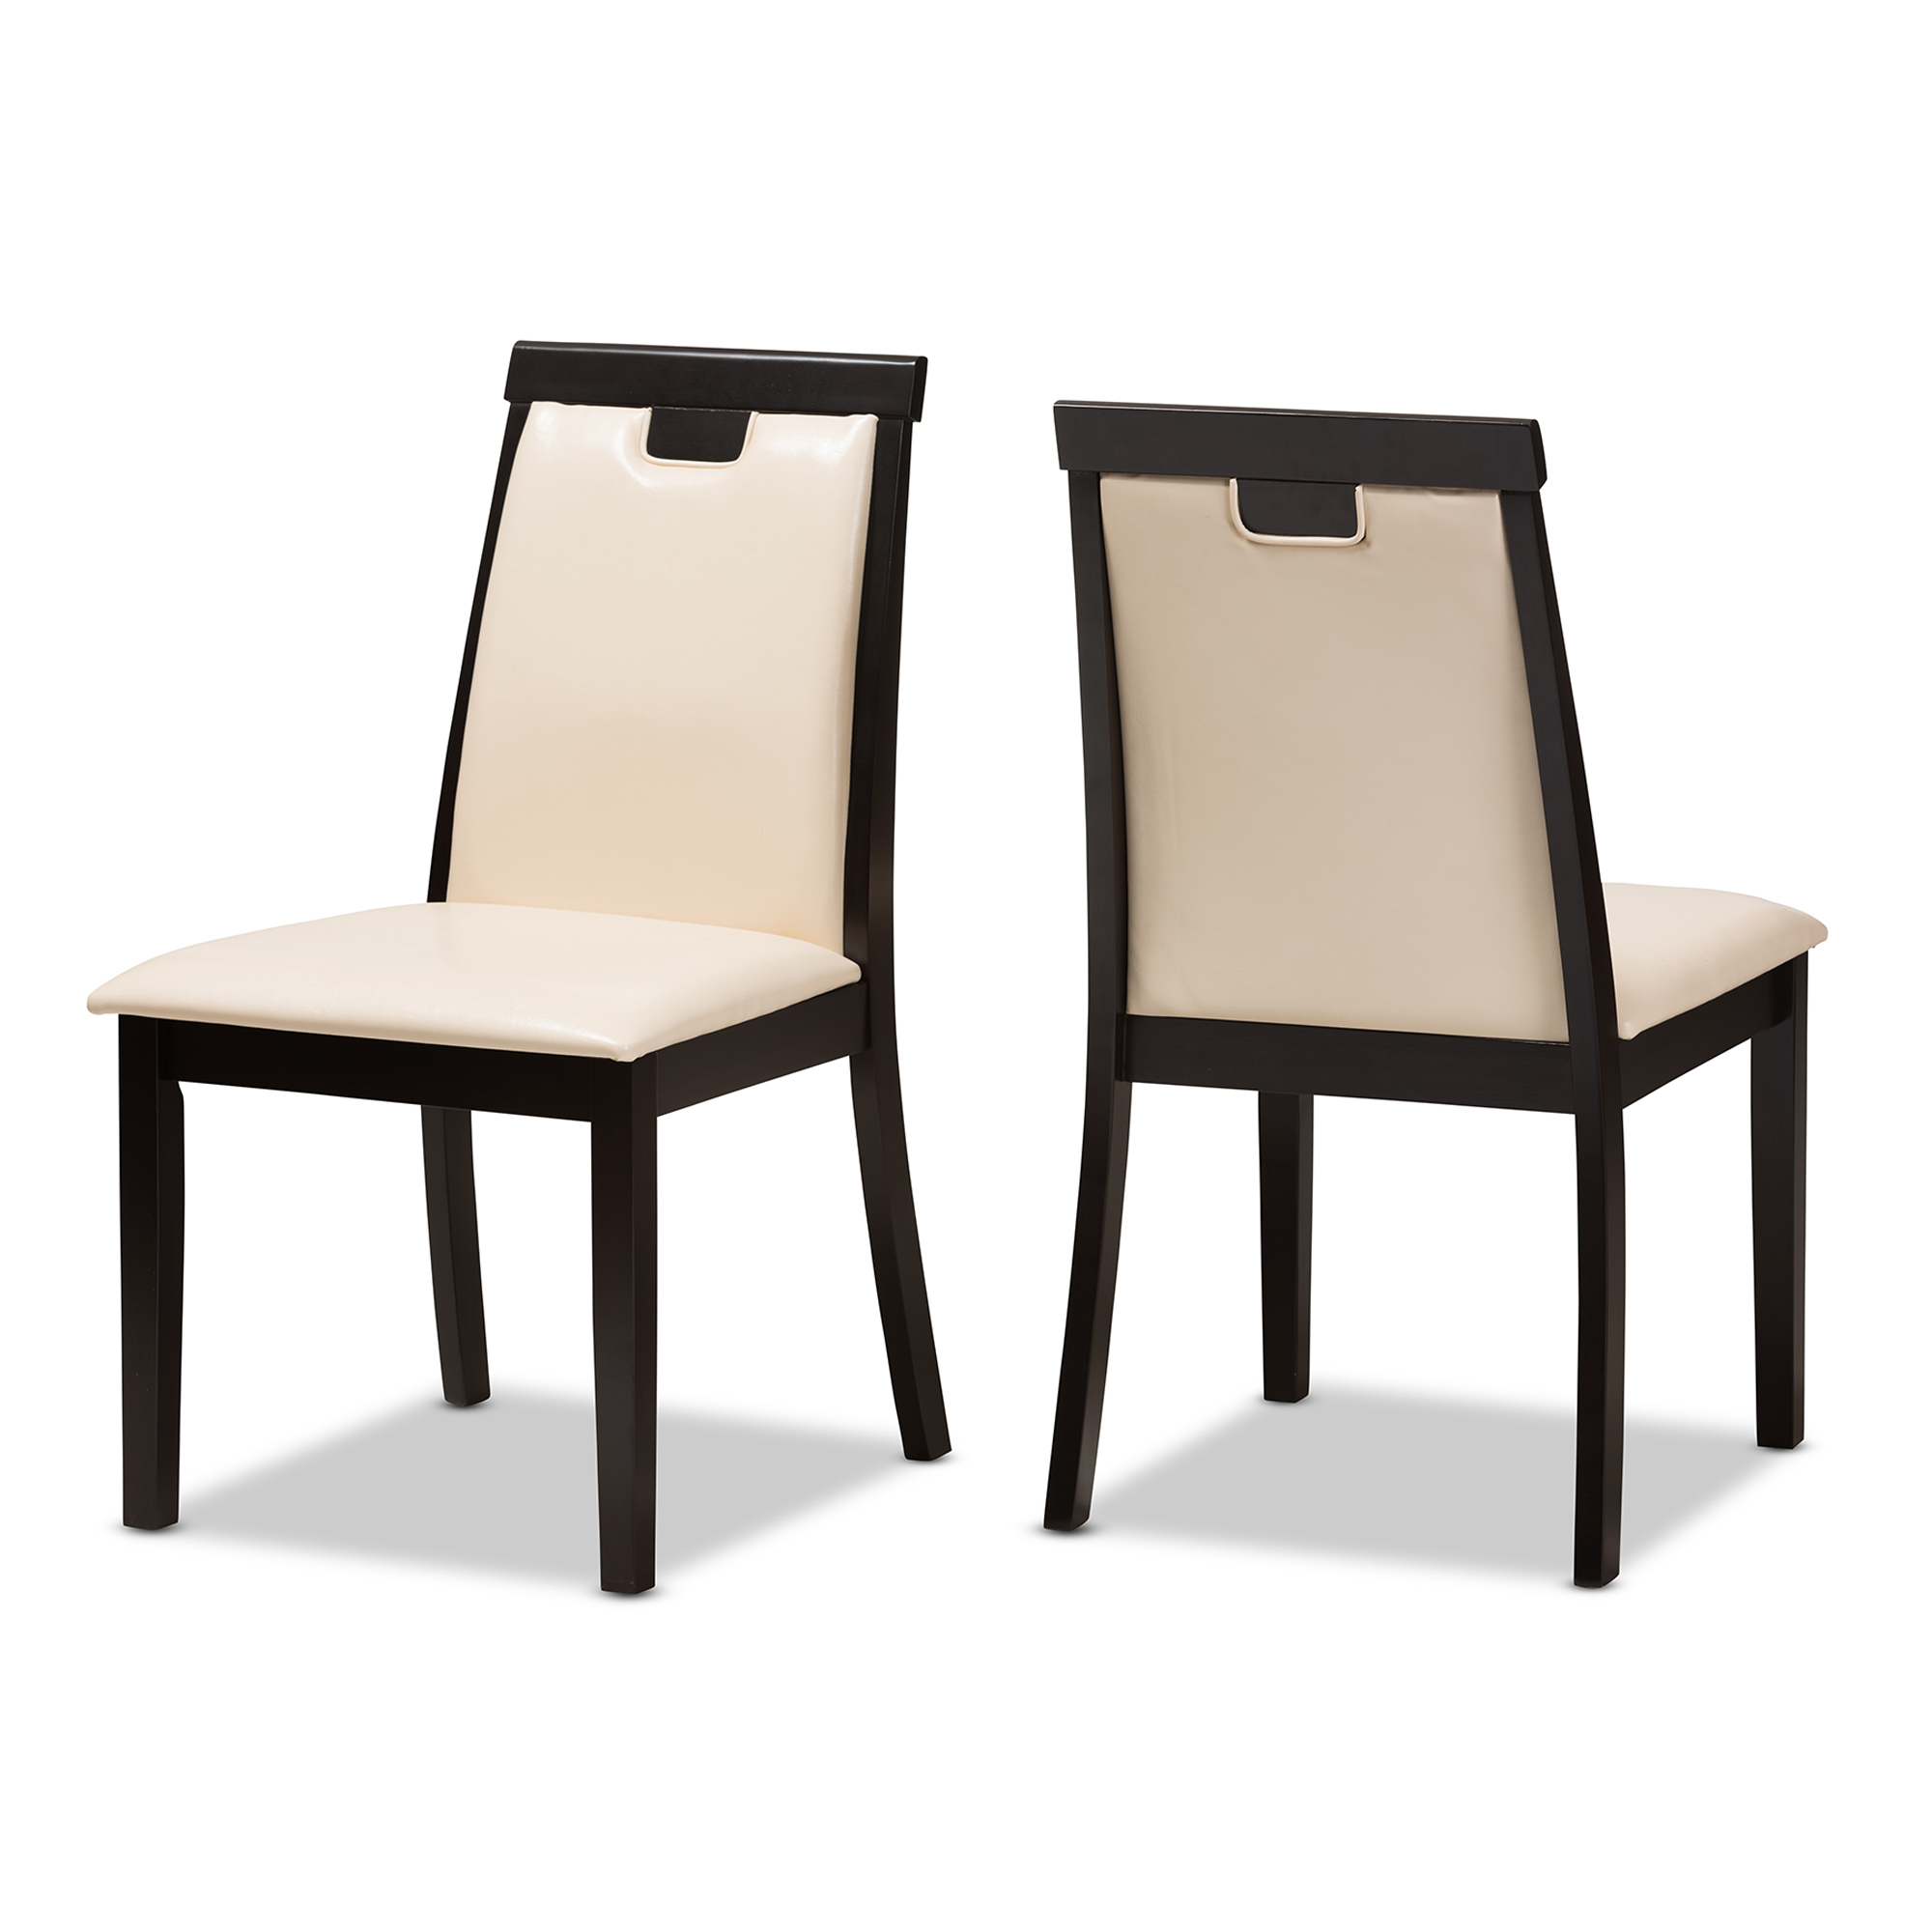 Beige Leather Dining Chairs Baxton Studio Evelyn Modern And Contemporary Beige Faux Leather